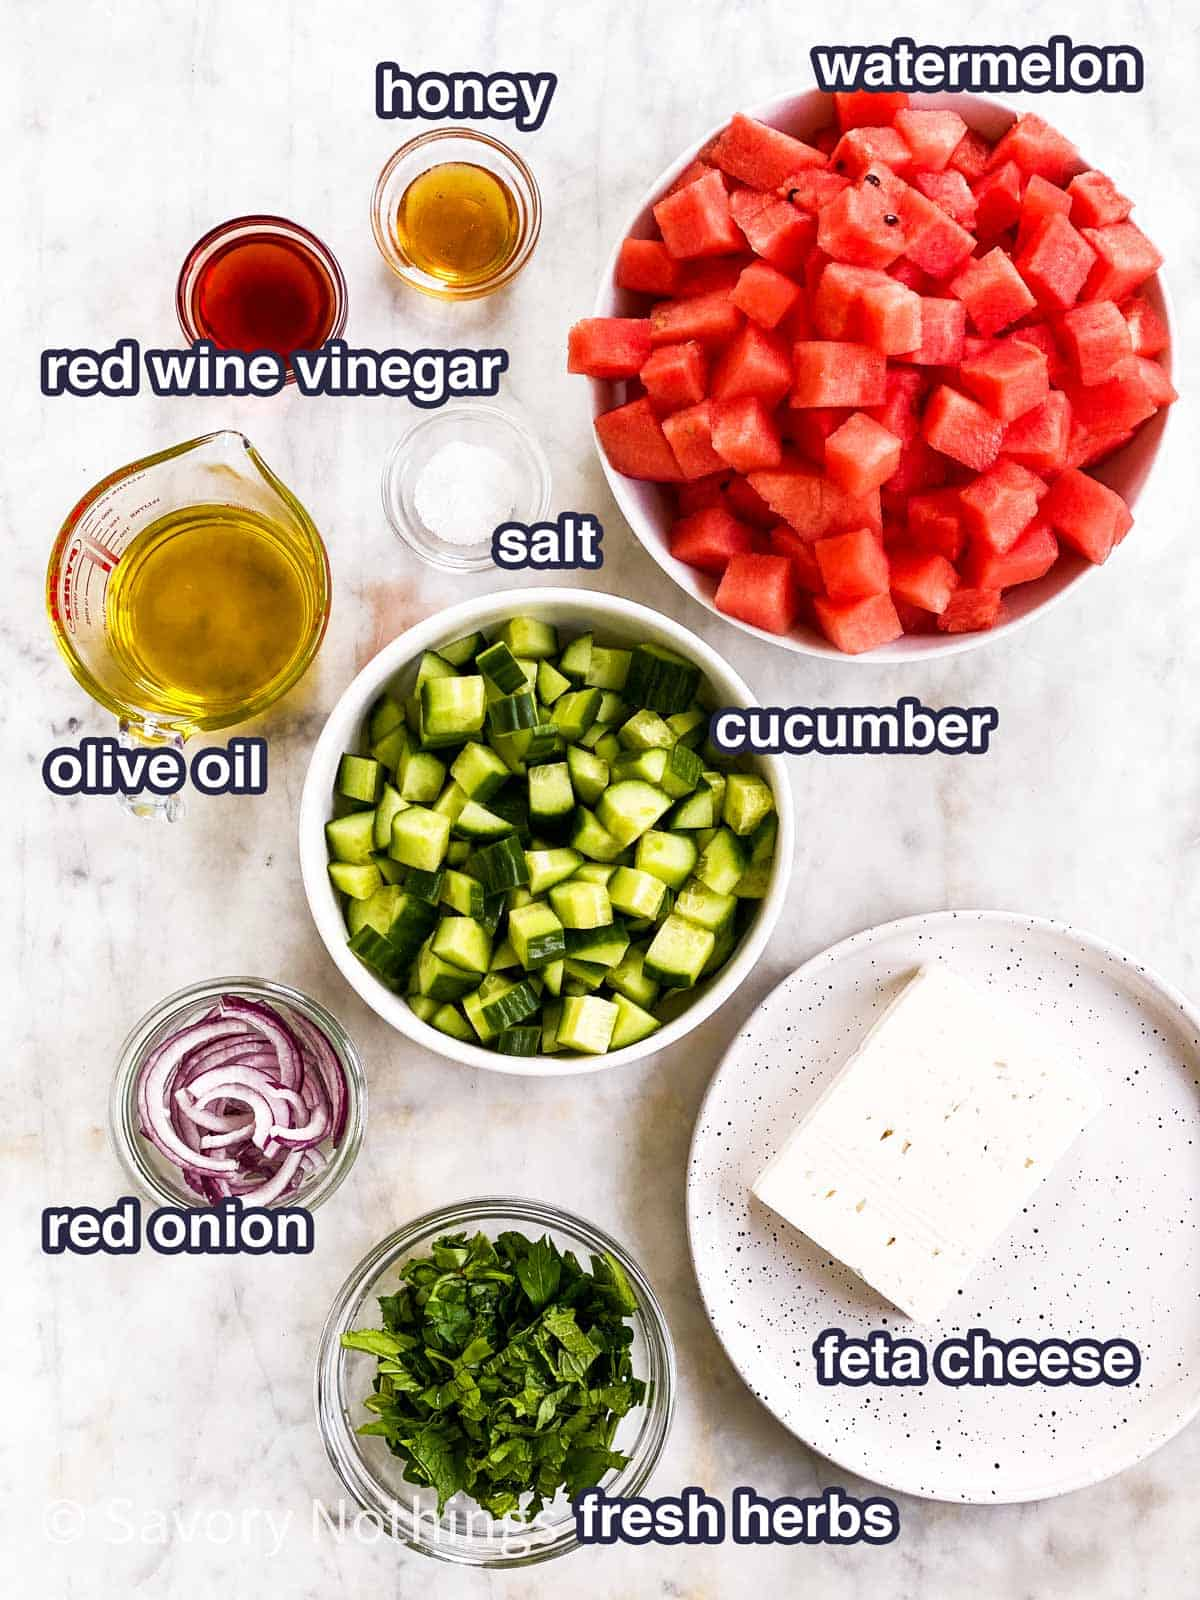 ingredients for watermelon salad with text labels